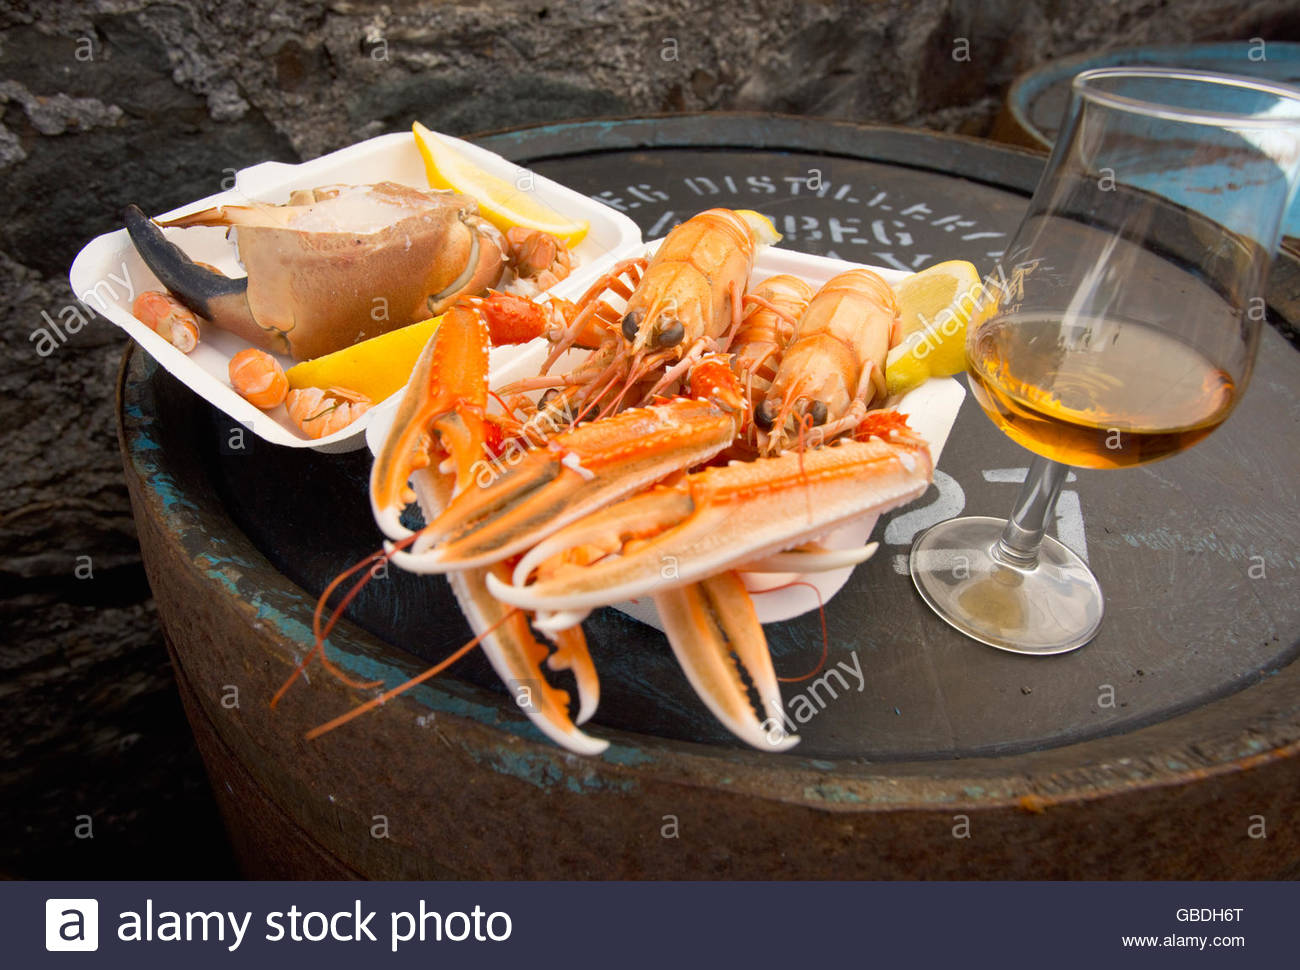 Takeaway crab and langoustines served at a distillery on the Isle of Islay, Inner Hebrides, Scotland. - Stock Image